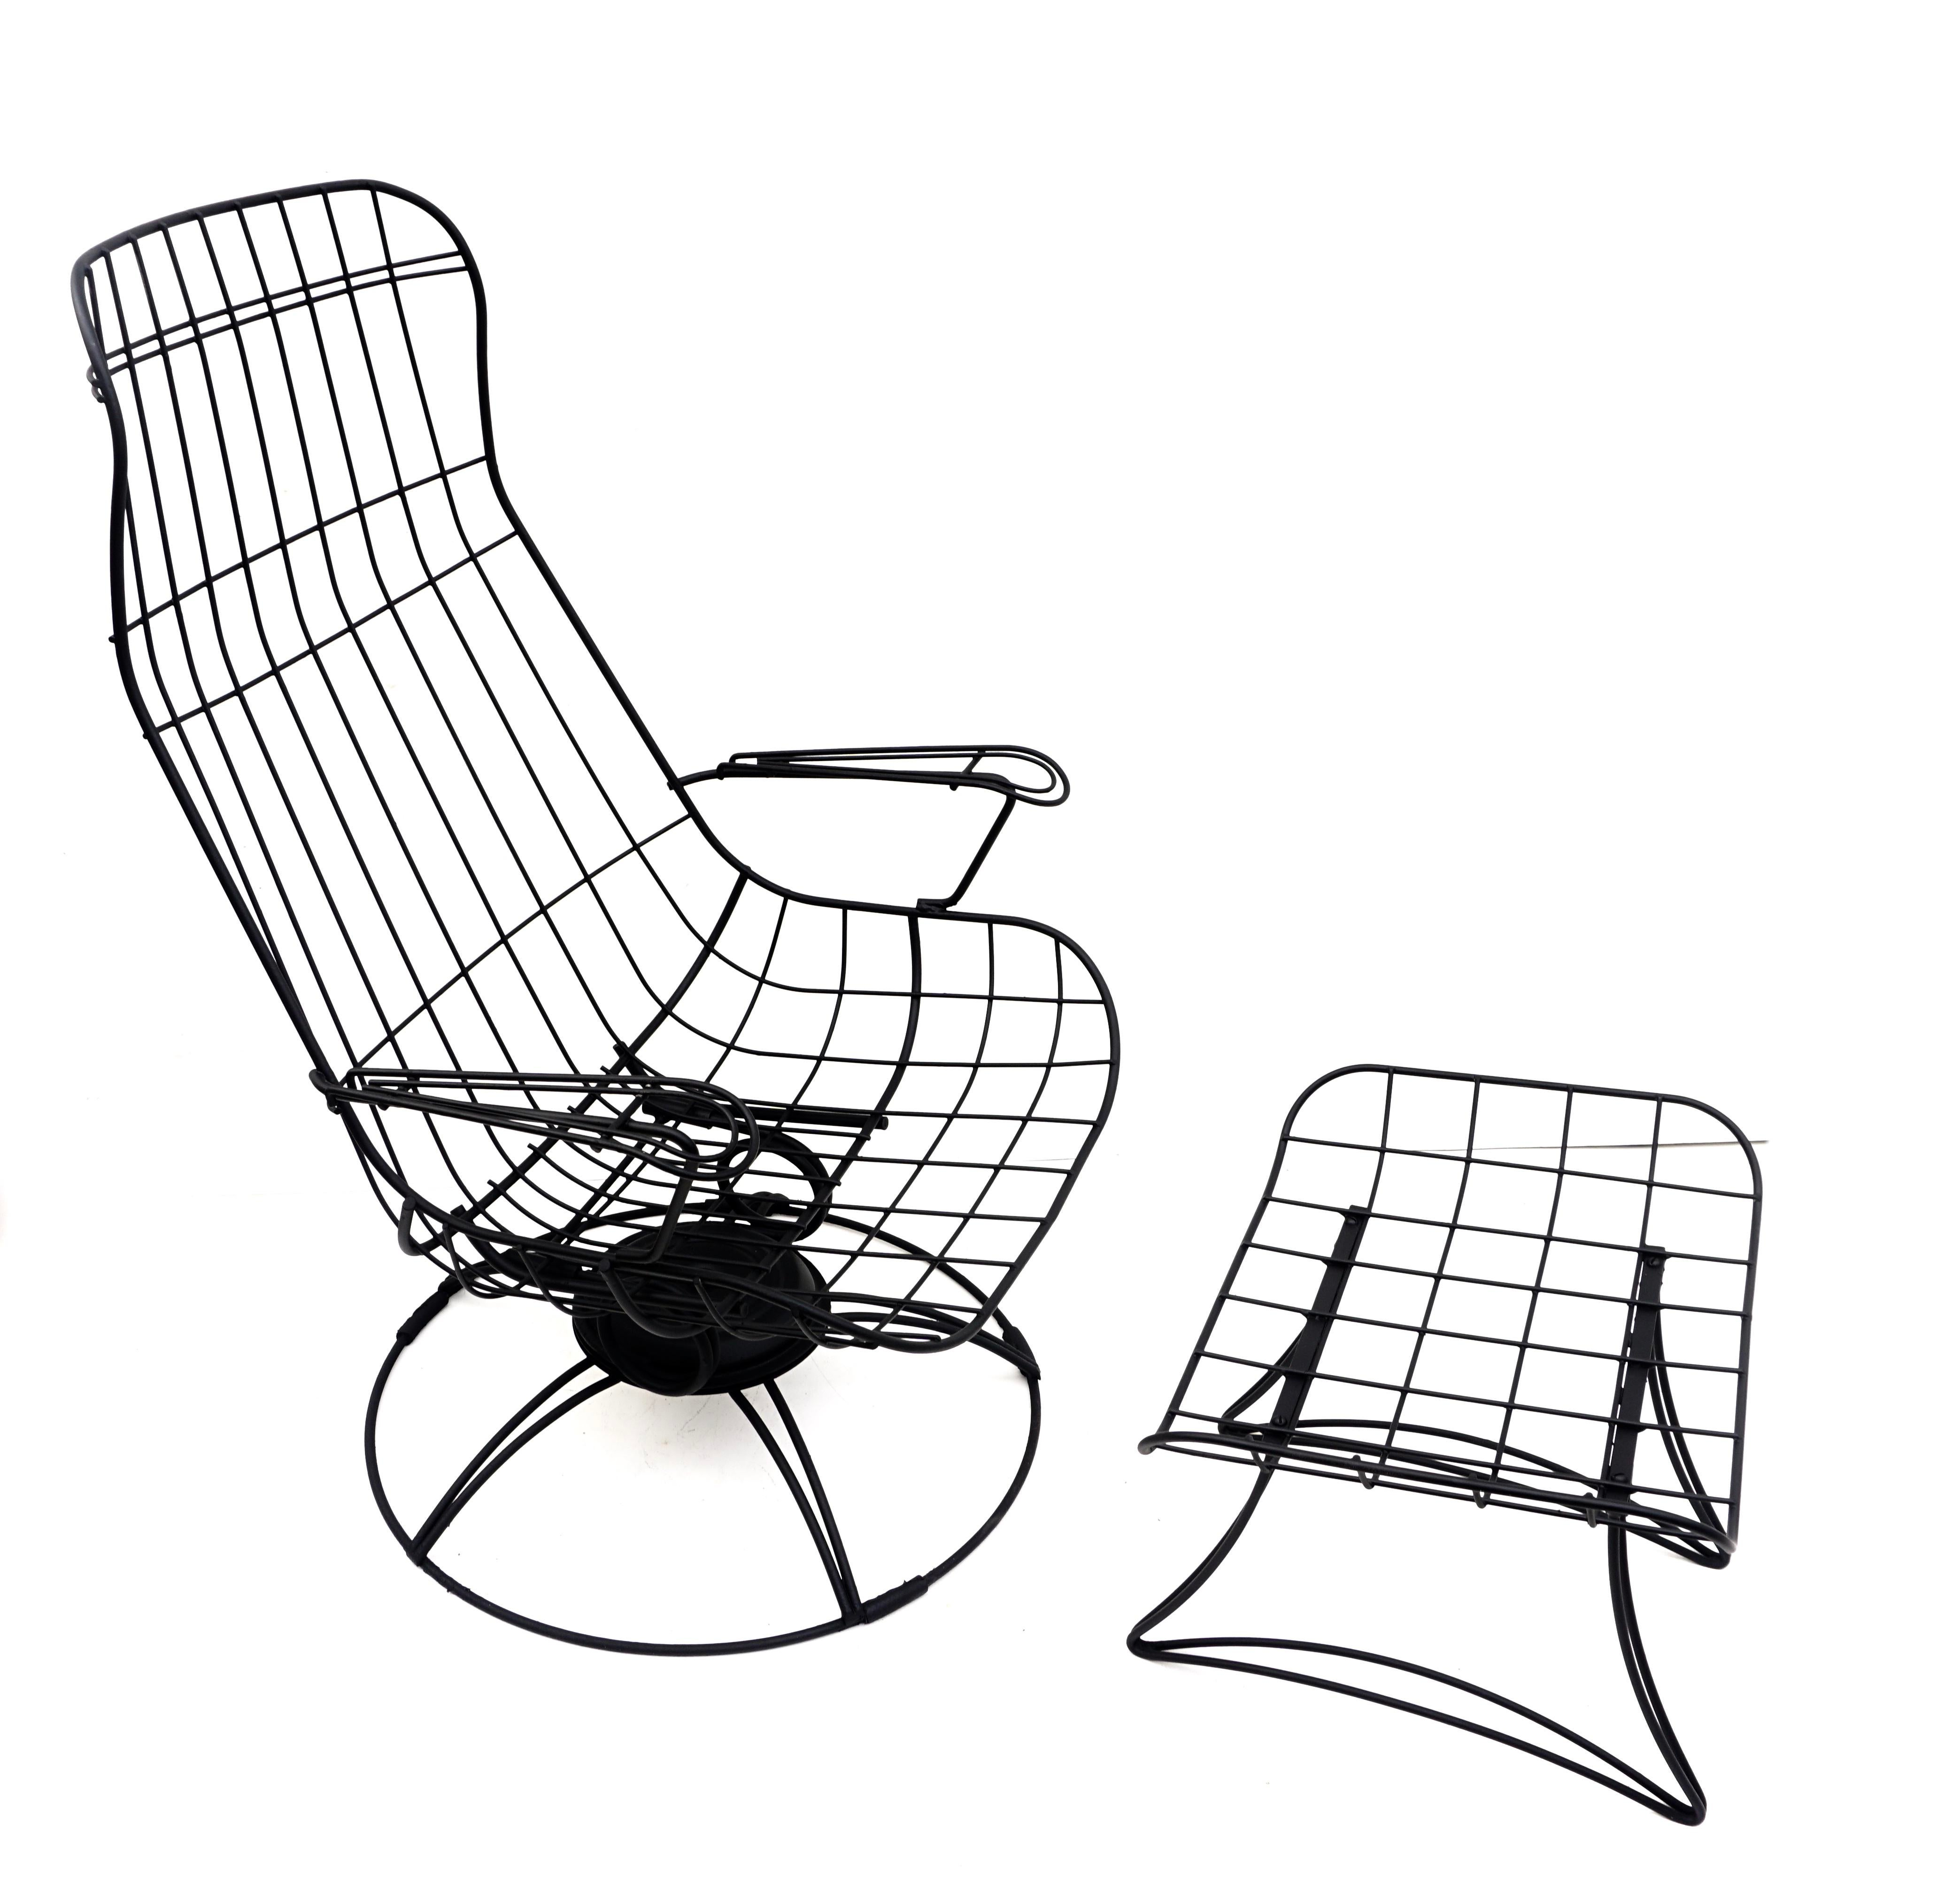 mid century homecrest metal wire patio chairs ottoman indoor outdoor high back swivel rocker lounger footstool original cushions included